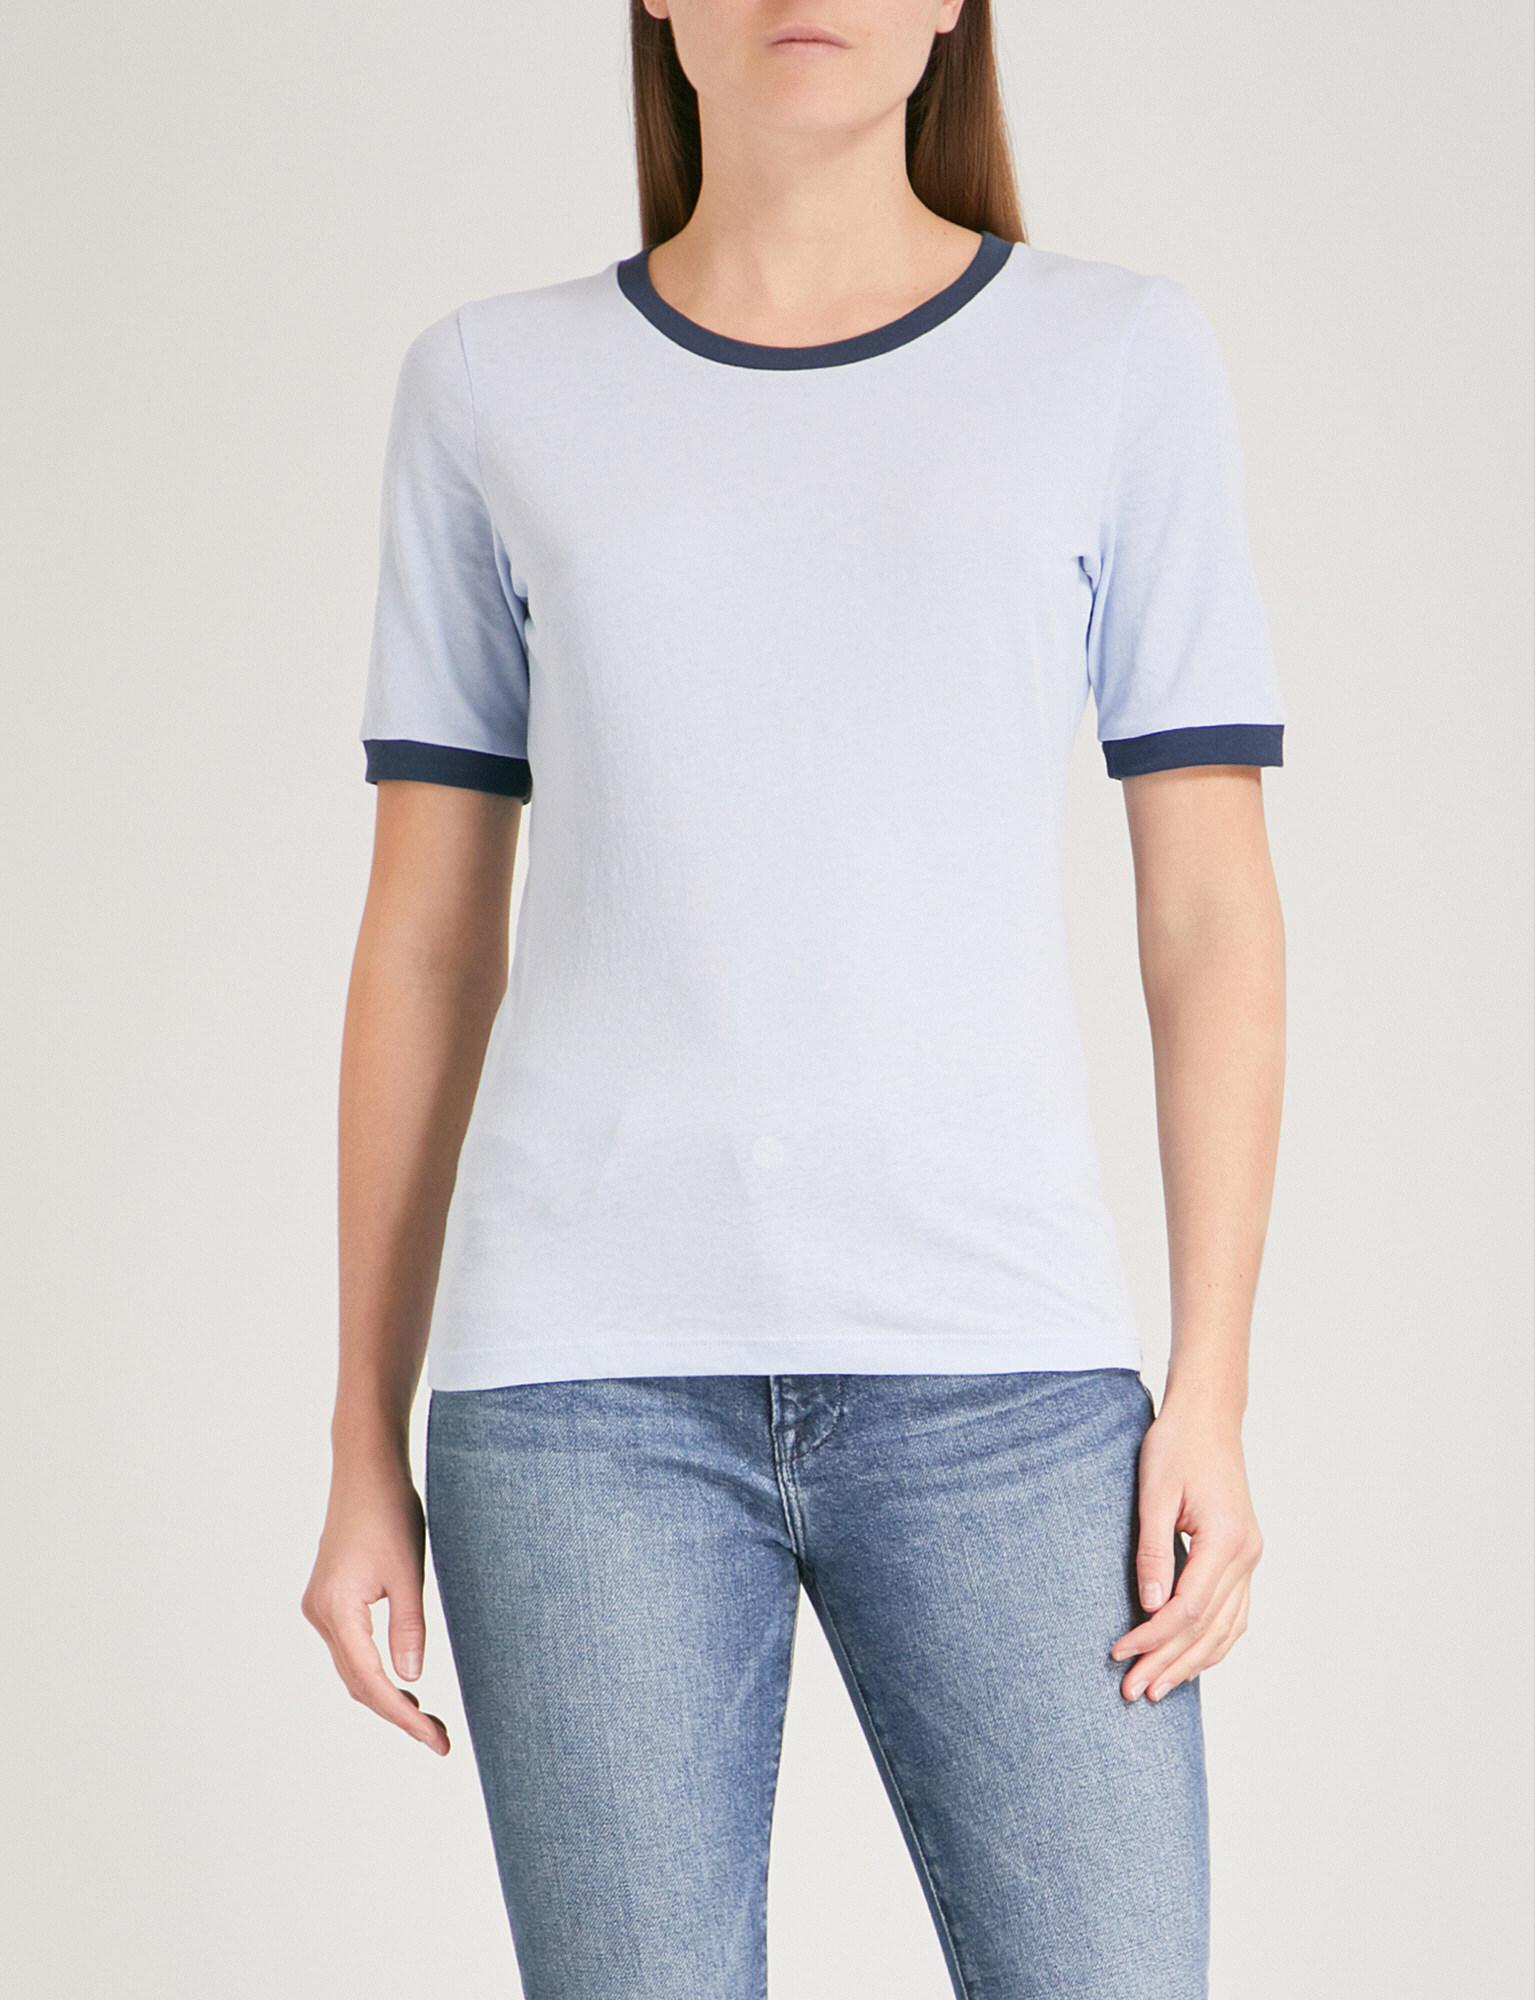 Cotton-jersey T-shirt Frame Denim Offer Clearance Lowest Price Best Store To Get Cheap Online Good Selling Discount With Credit Card WBZ9GT